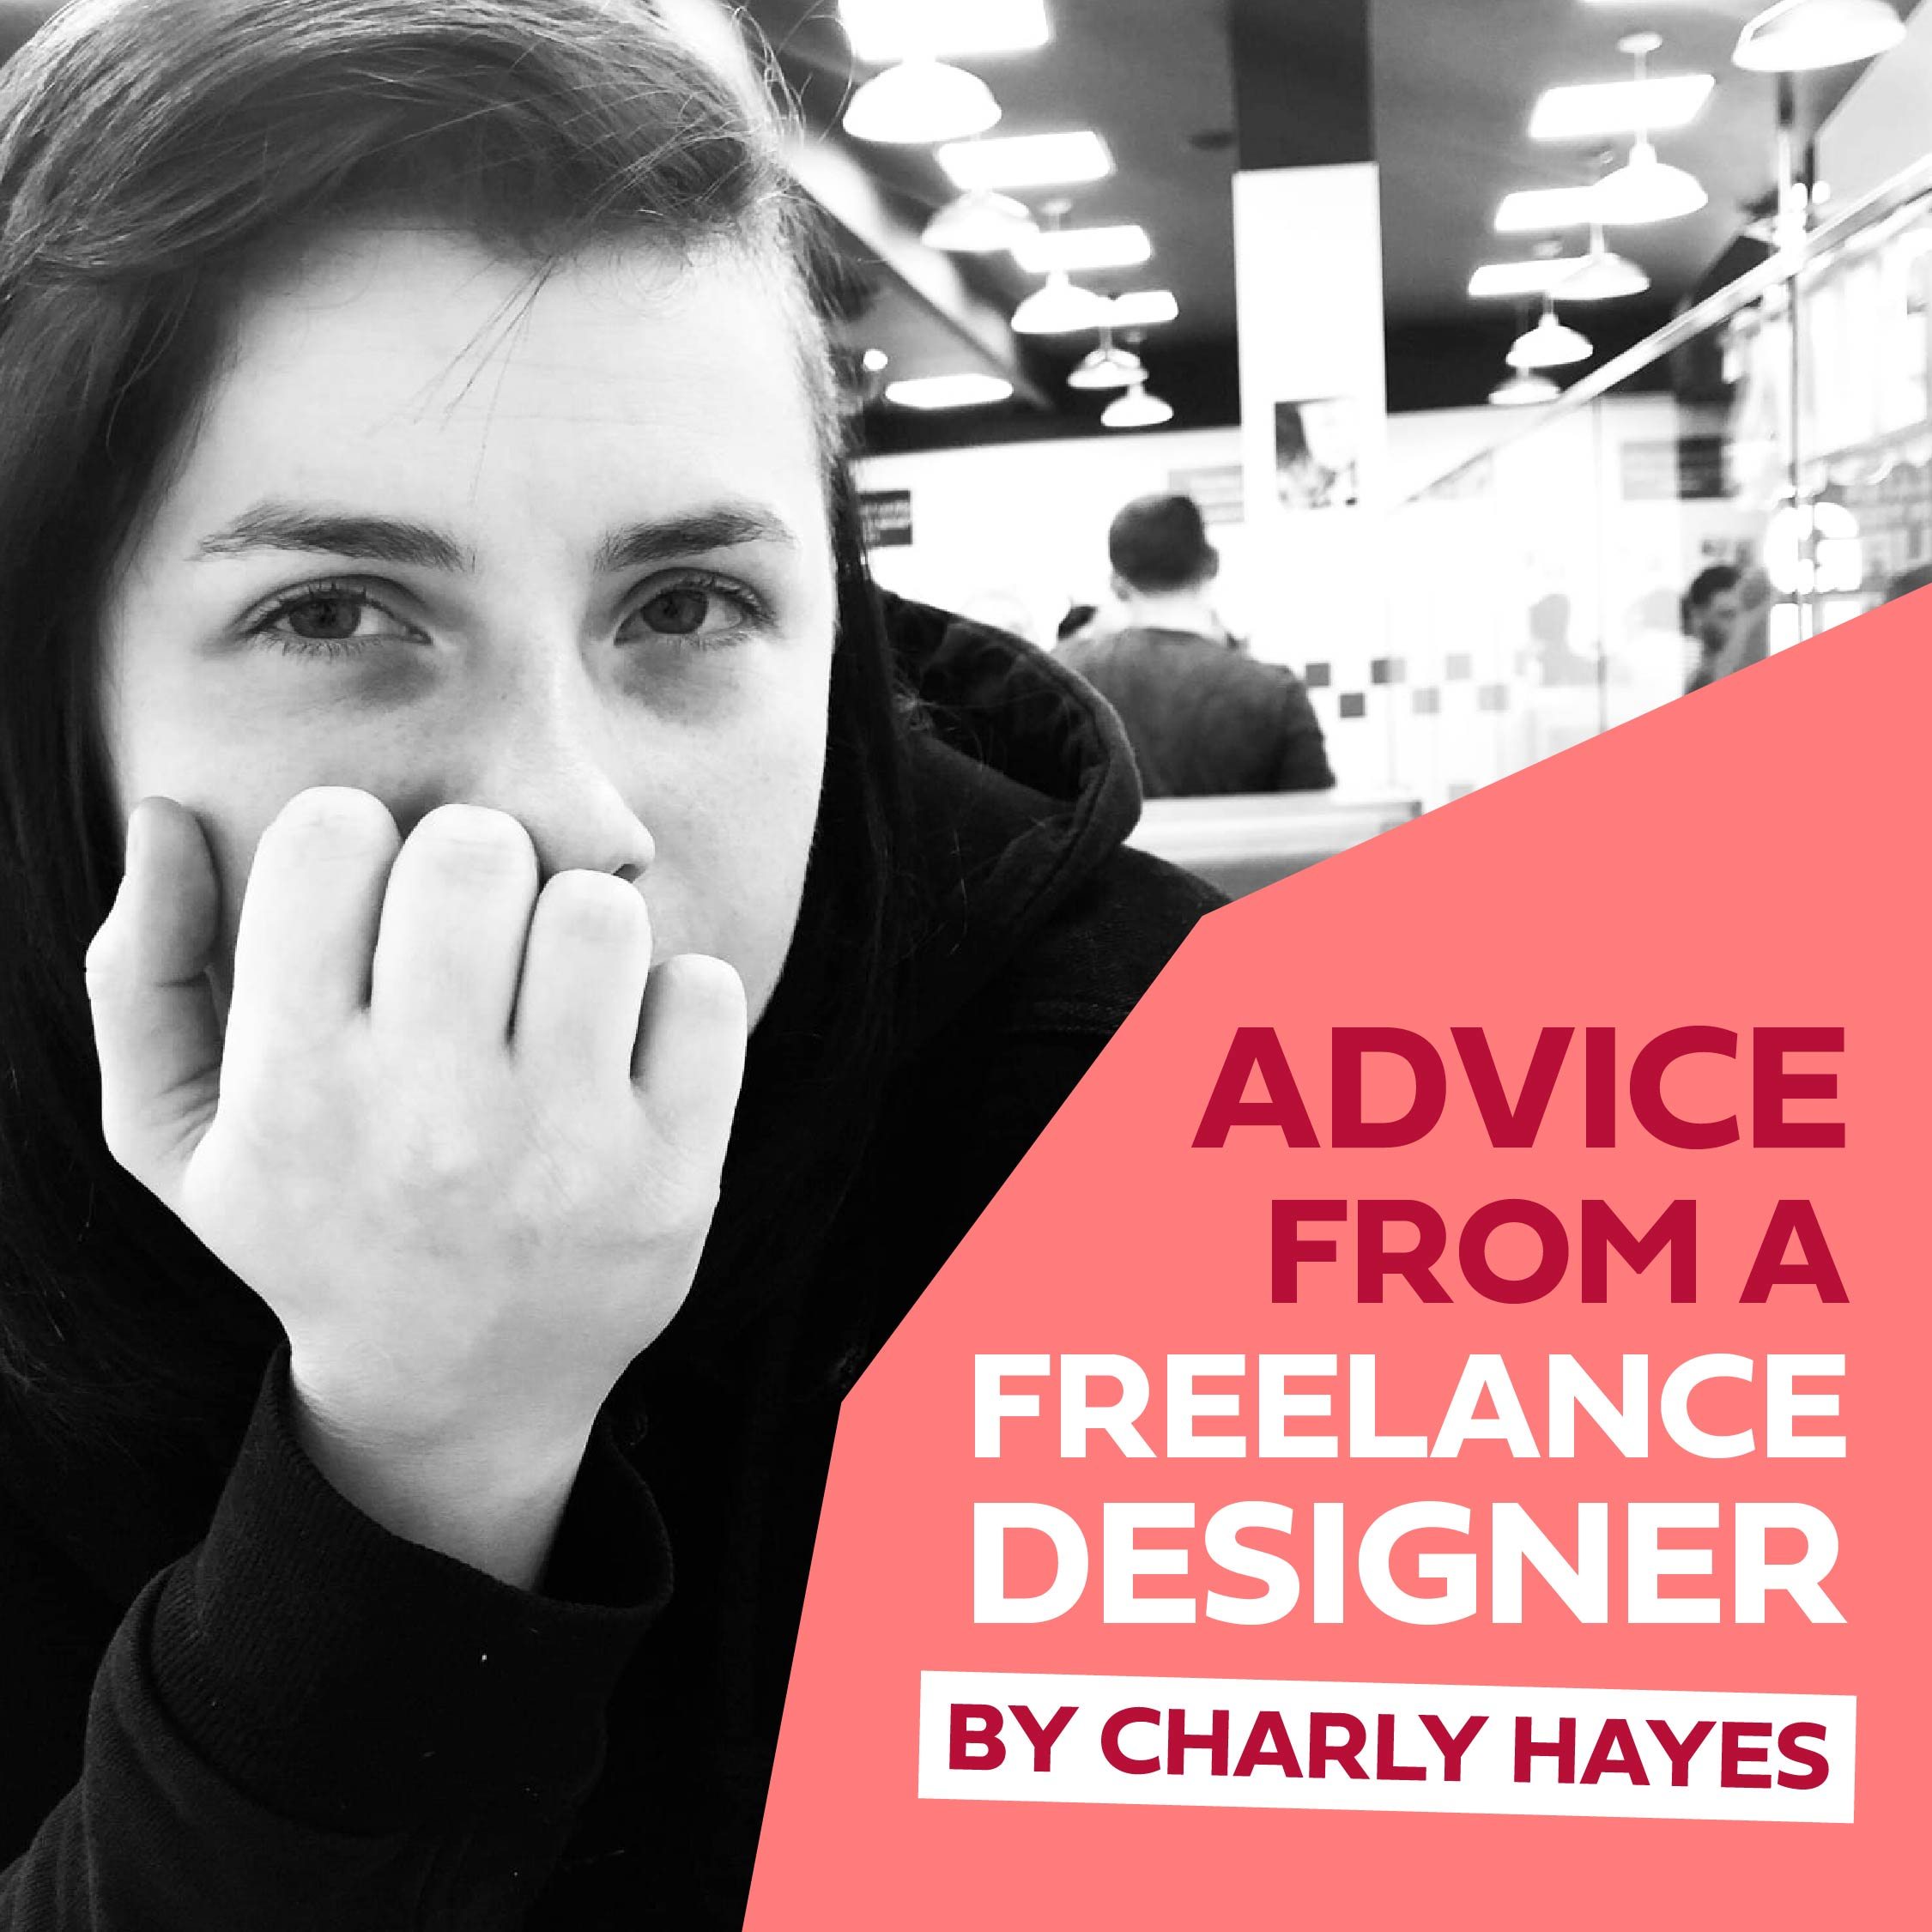 Advise from a freelance graphic designer called Charly Hayes